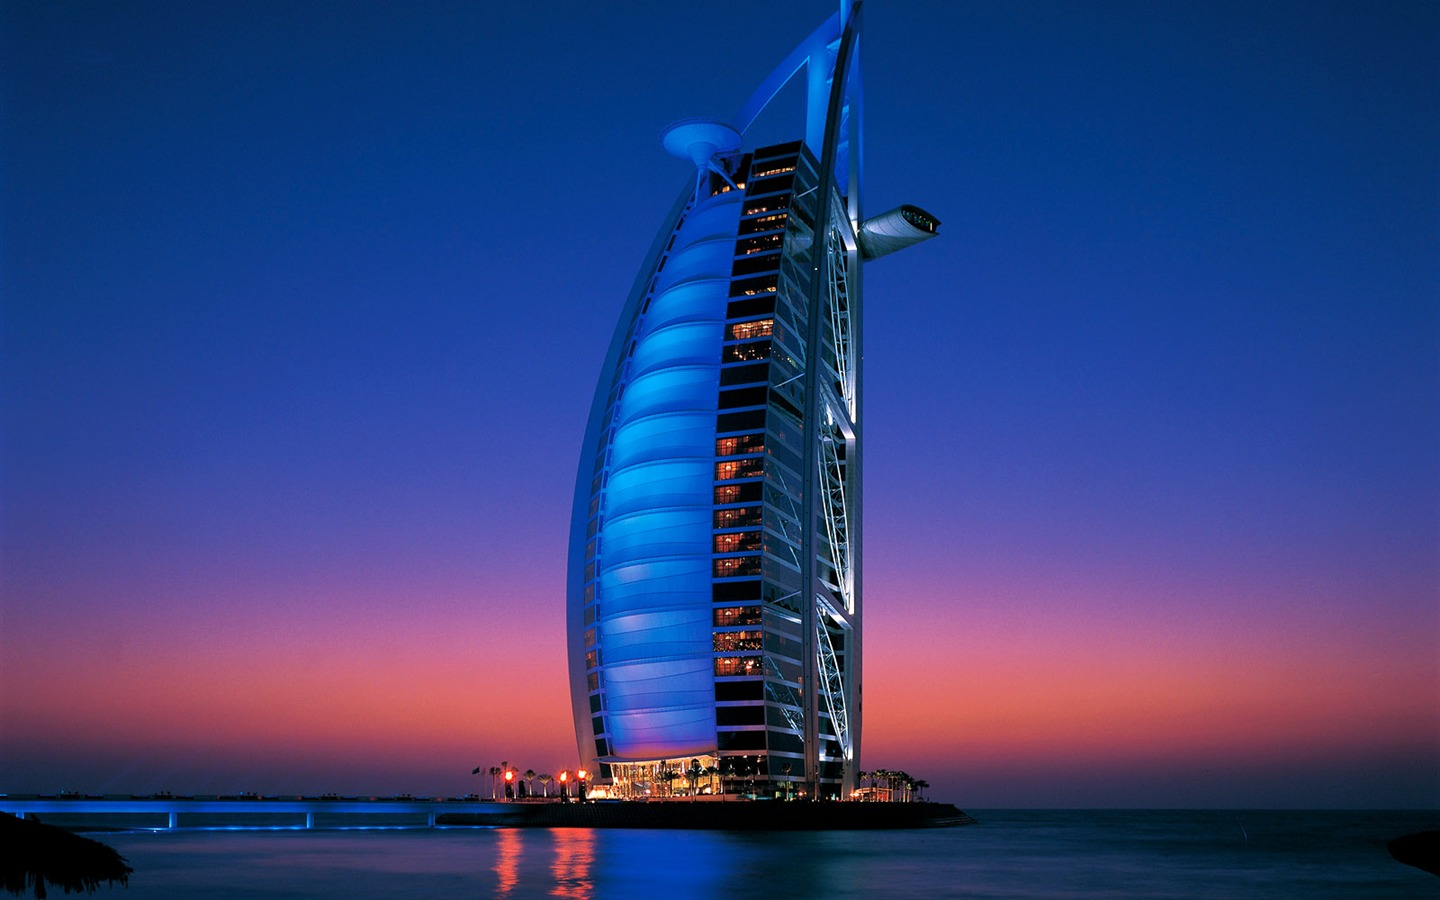 Seven star hotel burj dubai wallpapers 5 1440x900 Dubai hotel pictures 7 star